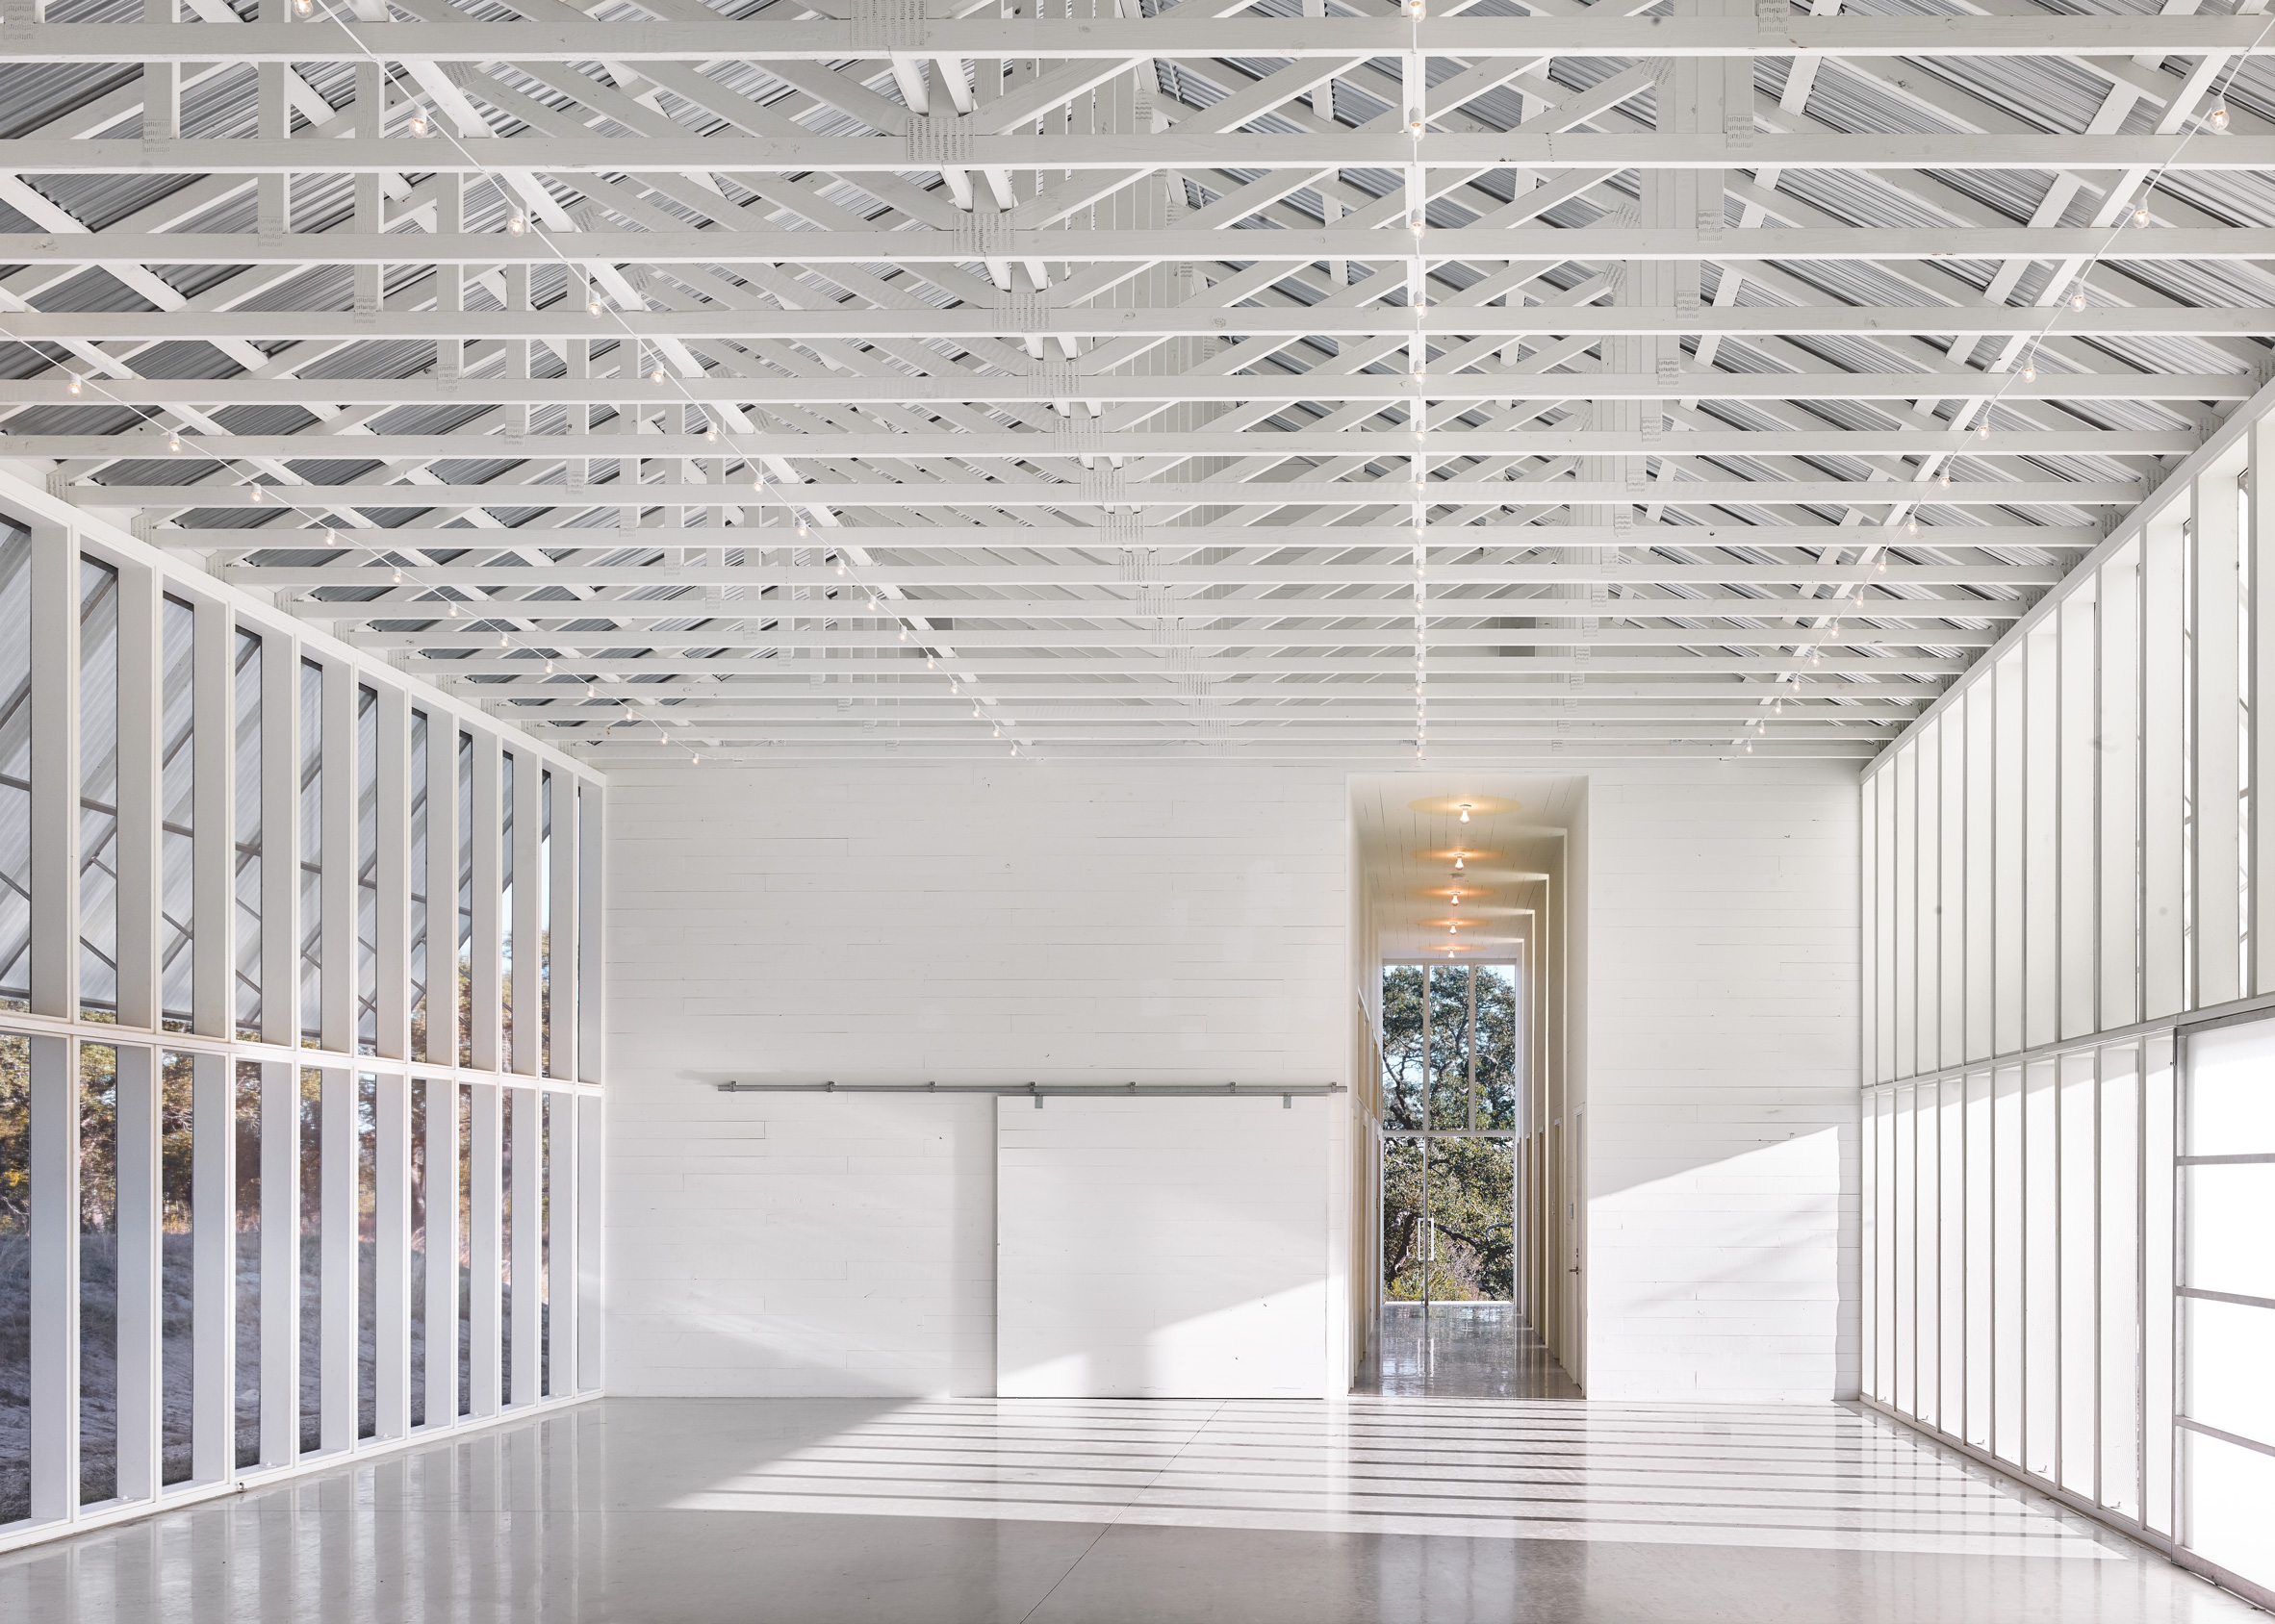 Prospect House, Dripping Springs, Texas, by Max Levy Architect